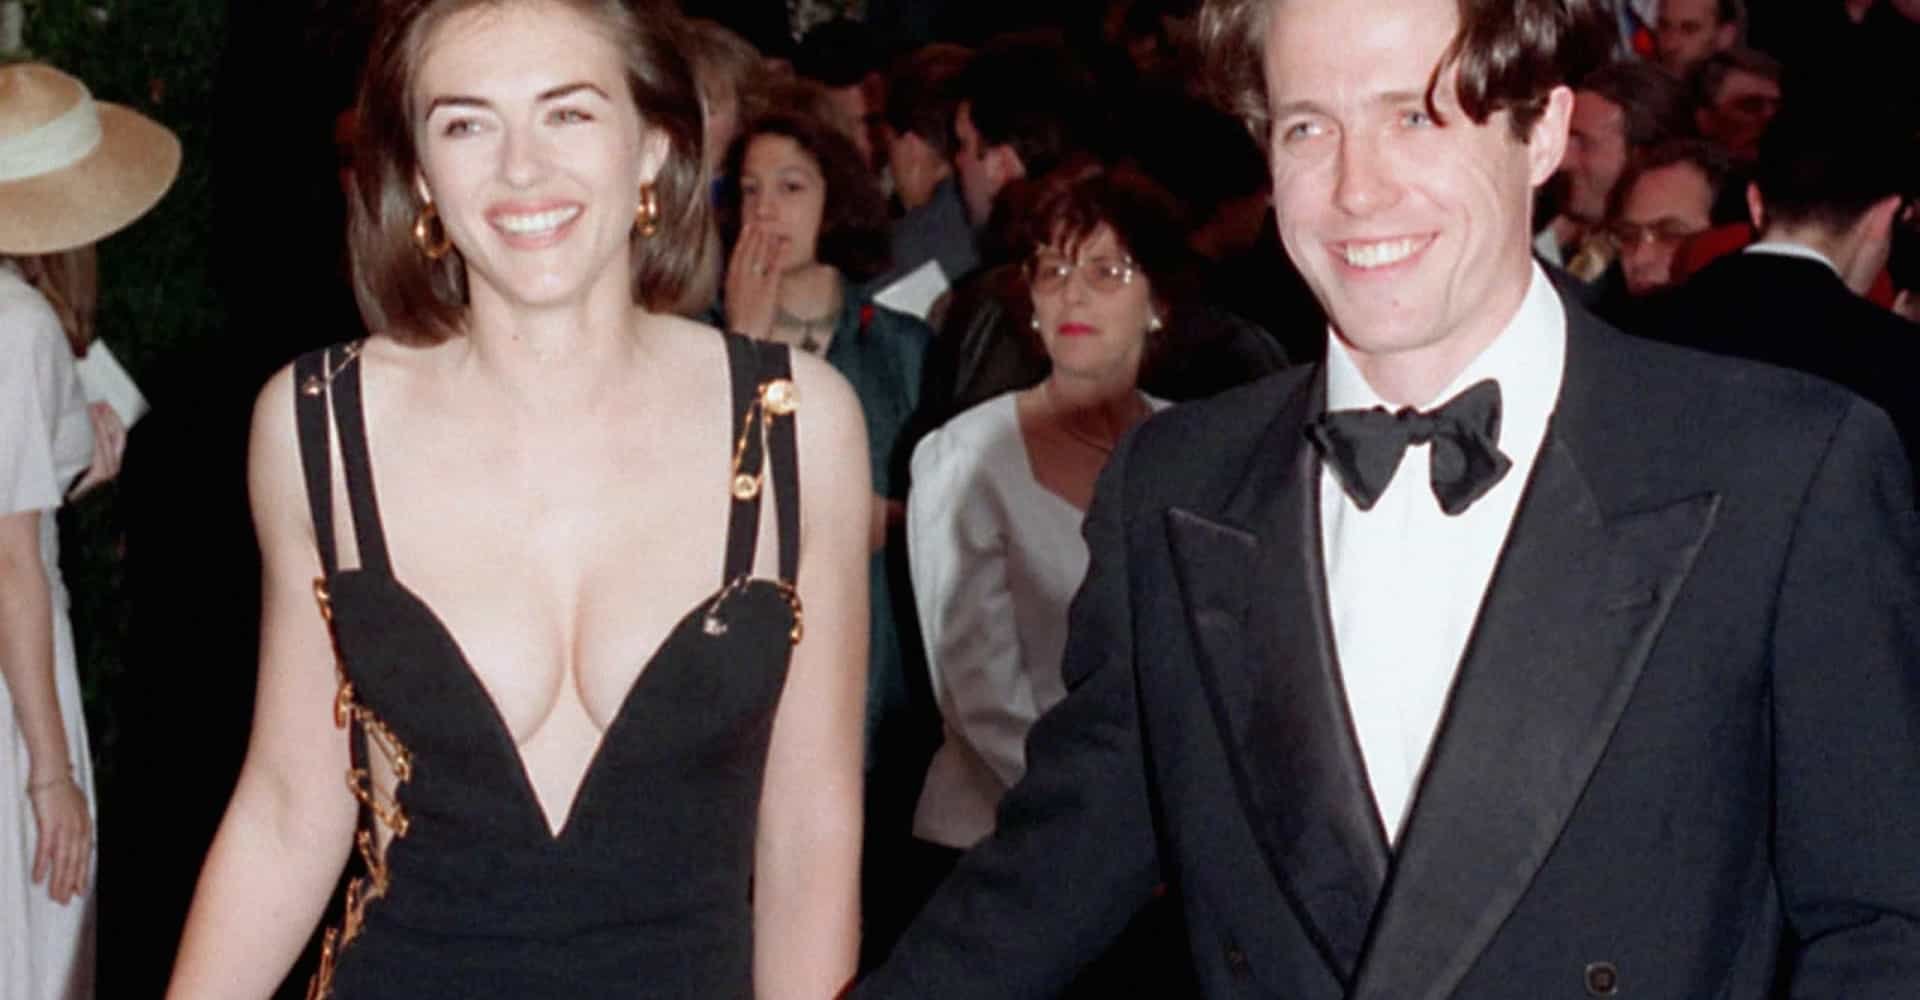 Revealing dresses in celebrity history